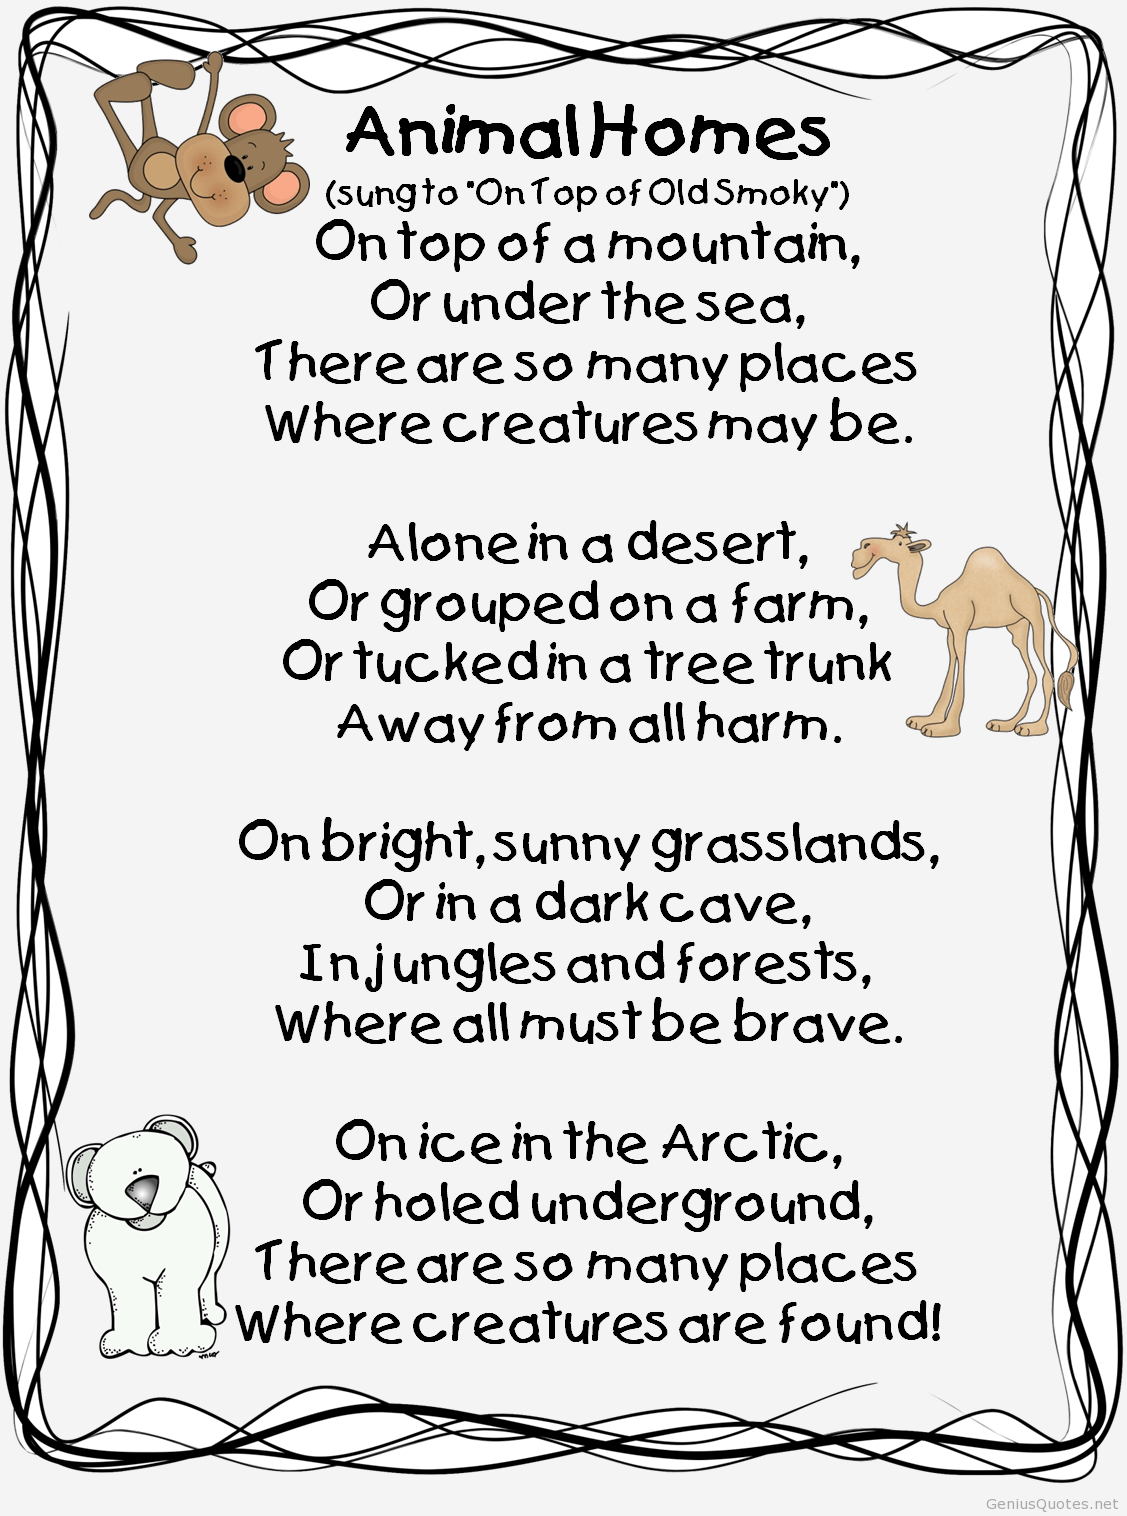 Poem About Animals Homes